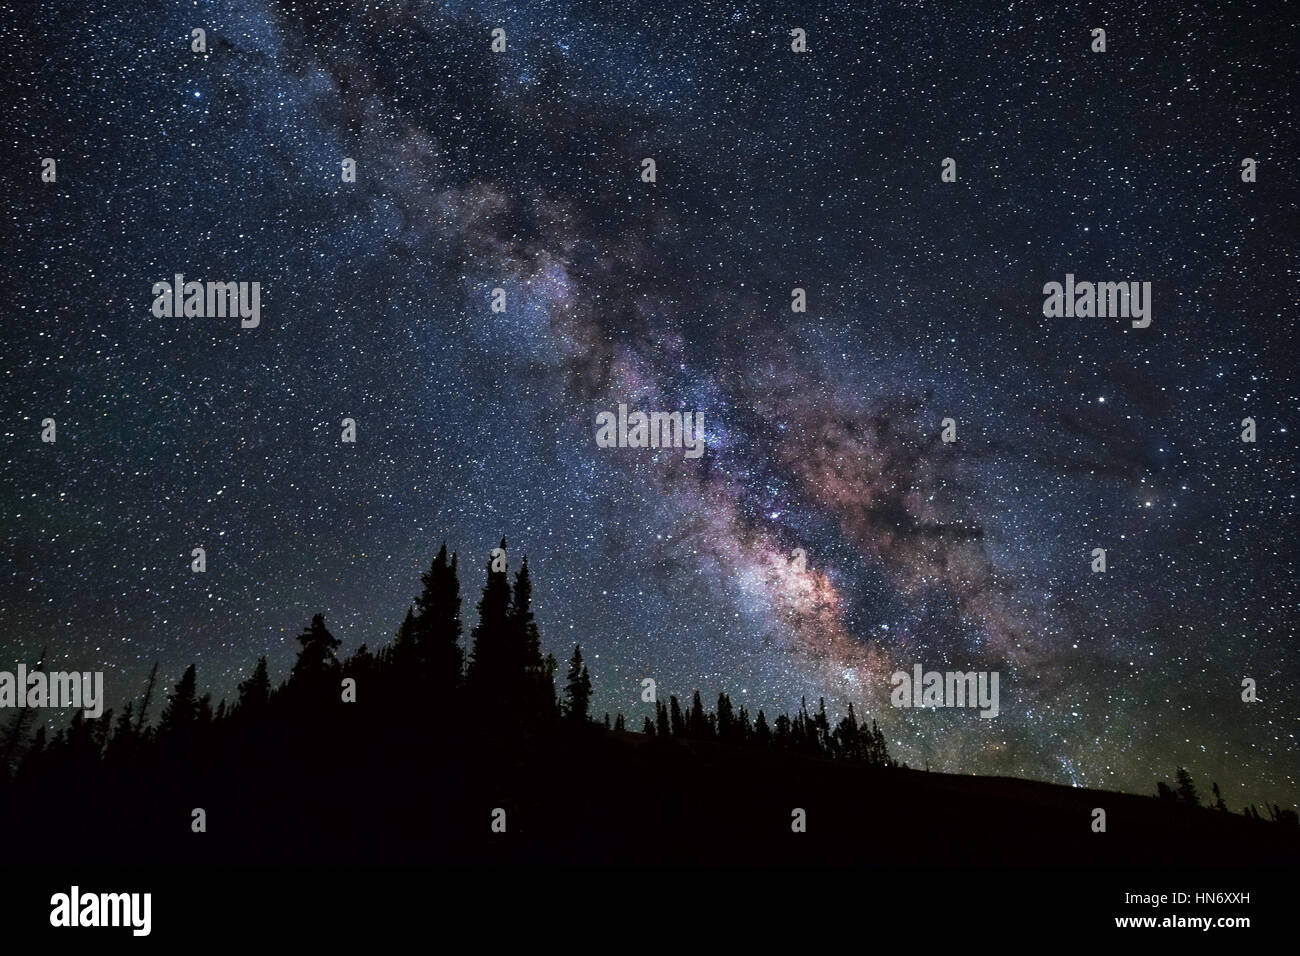 Milky Way Galaxy - Stock Image